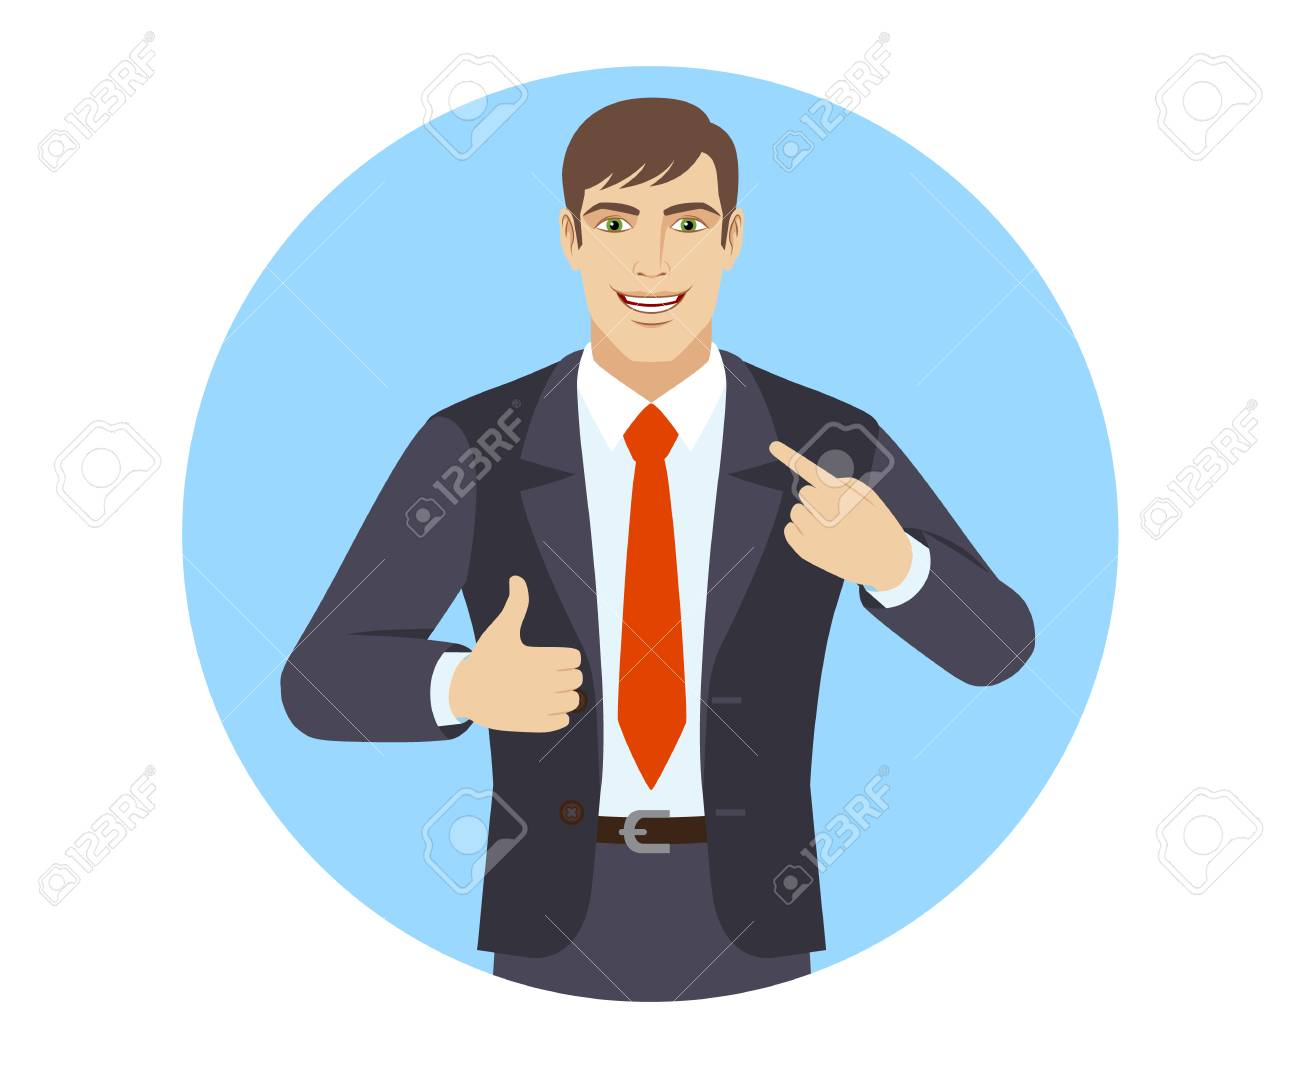 self promotion businessman pointing the finger at himself and